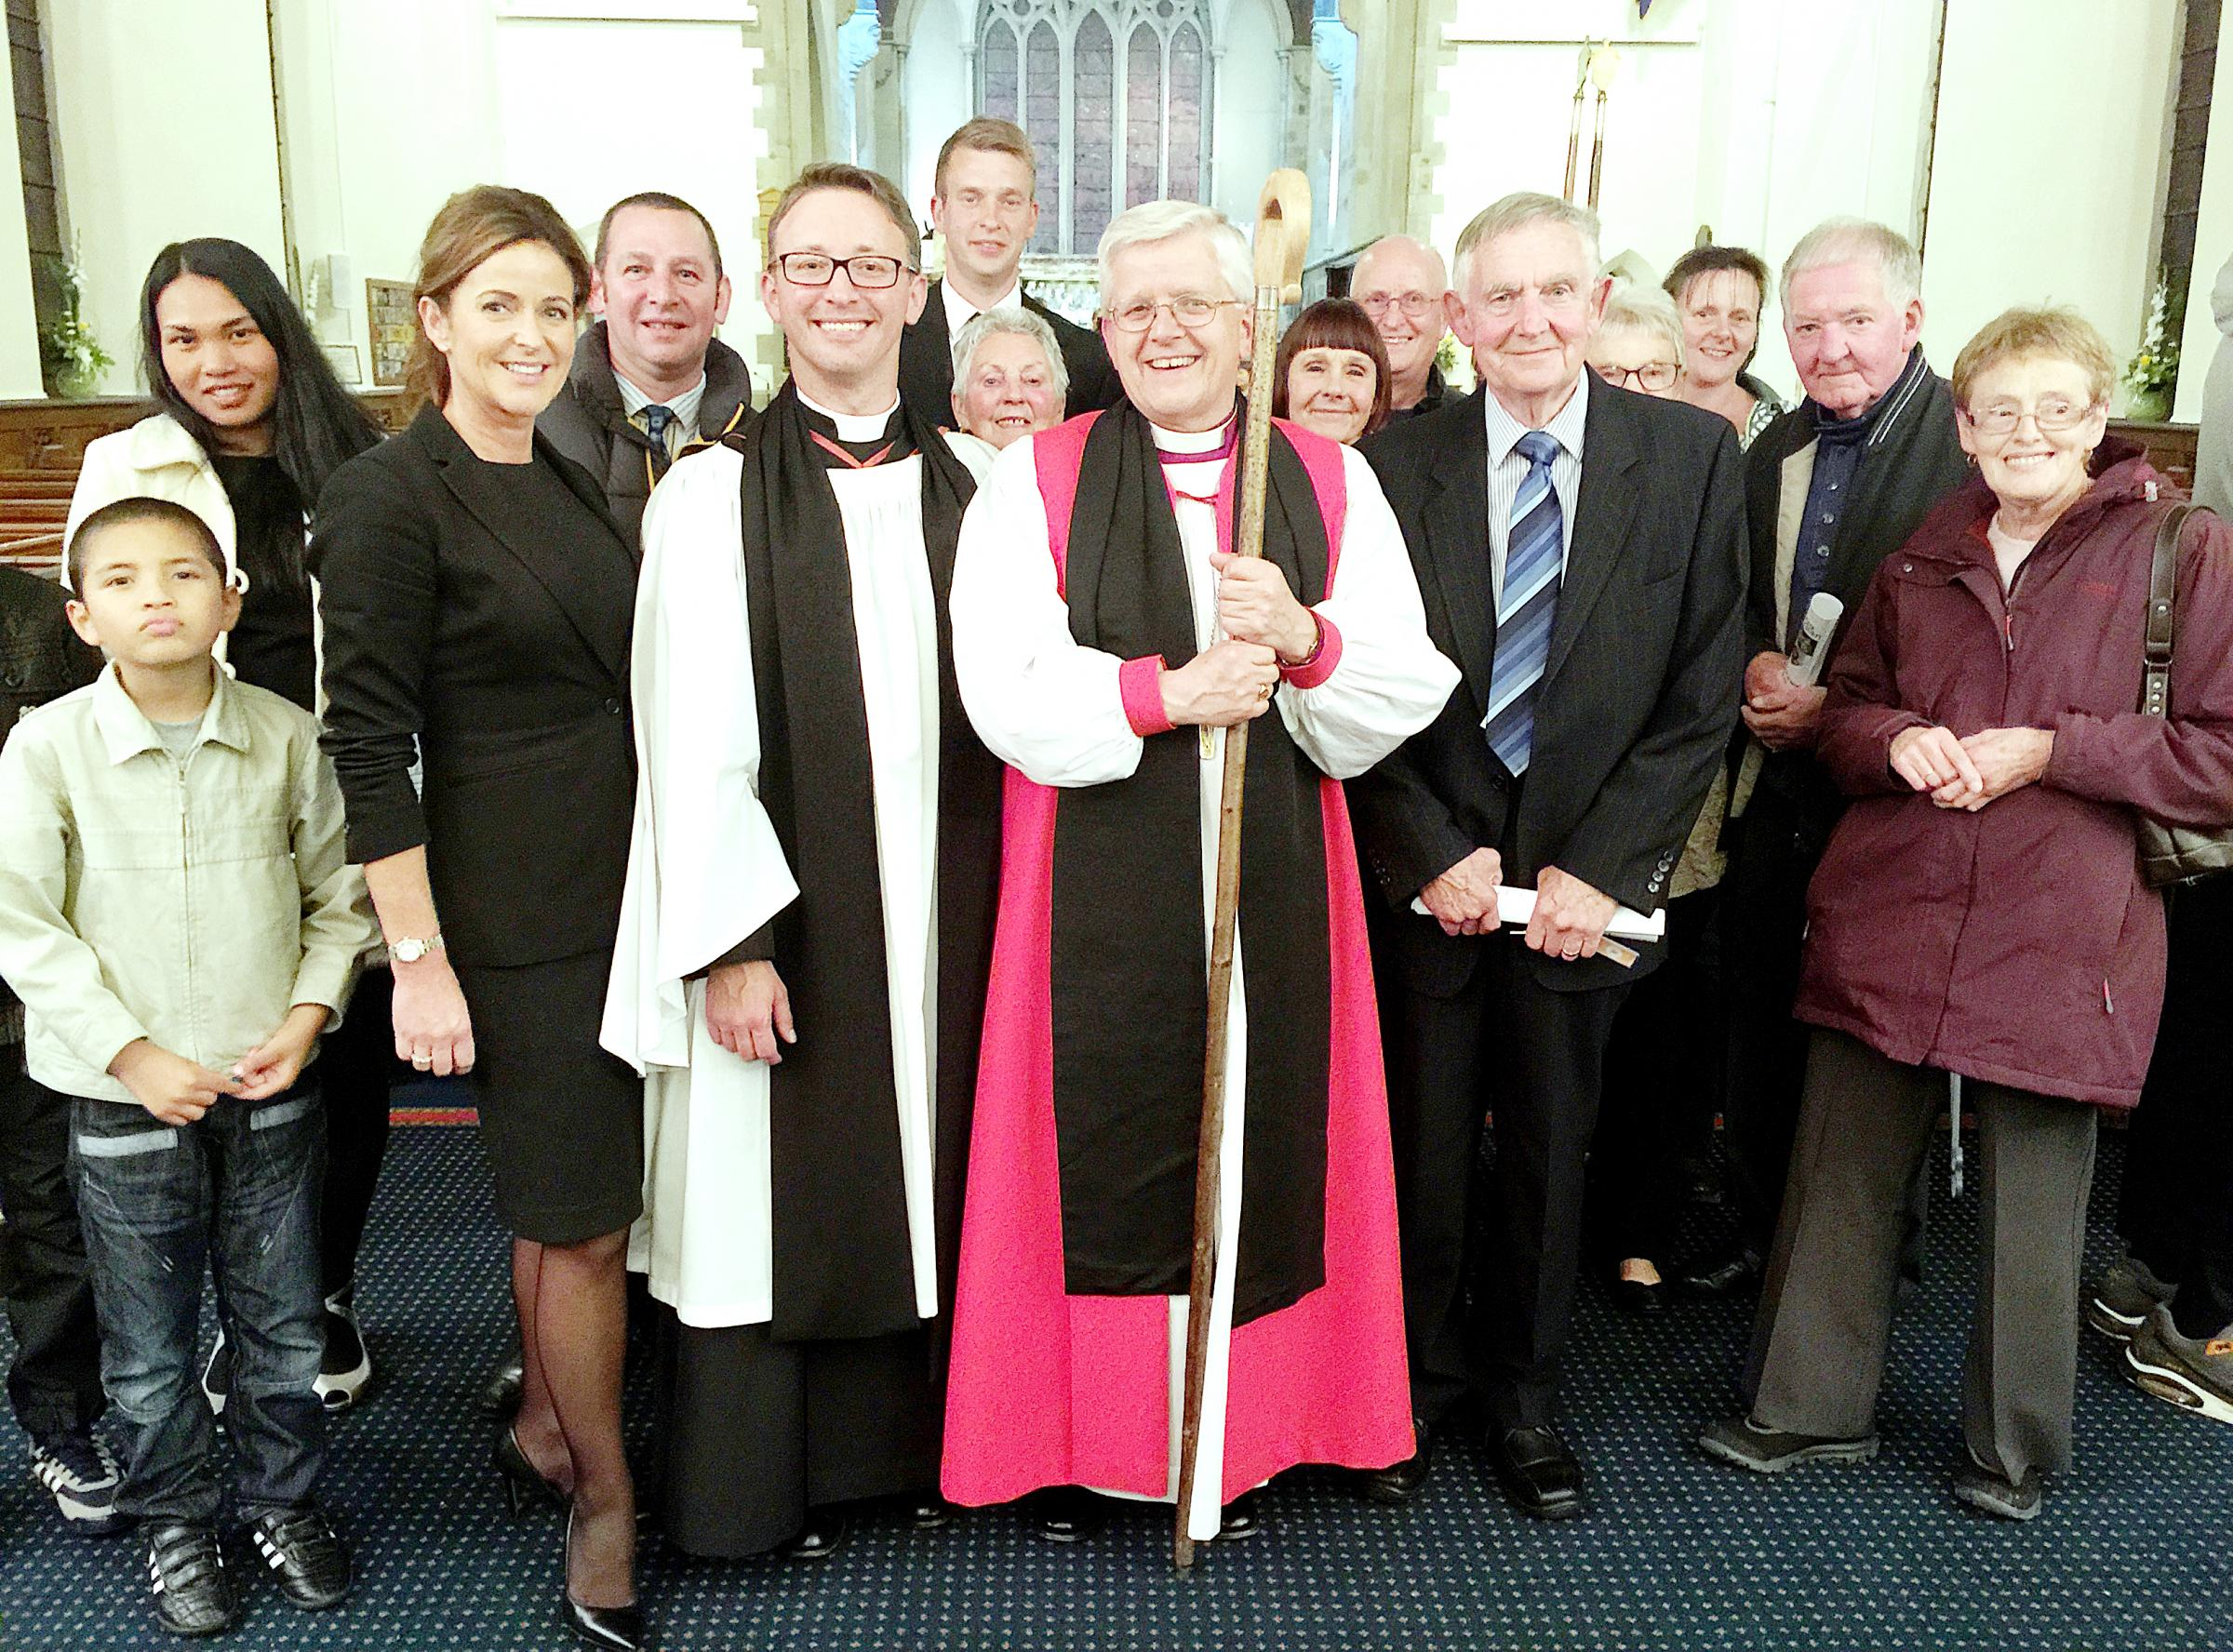 WELCOME: Rt Rev. Julian Henderson and Rev Toby Webber, centre, with some of Toby's new parishioners after the induction service